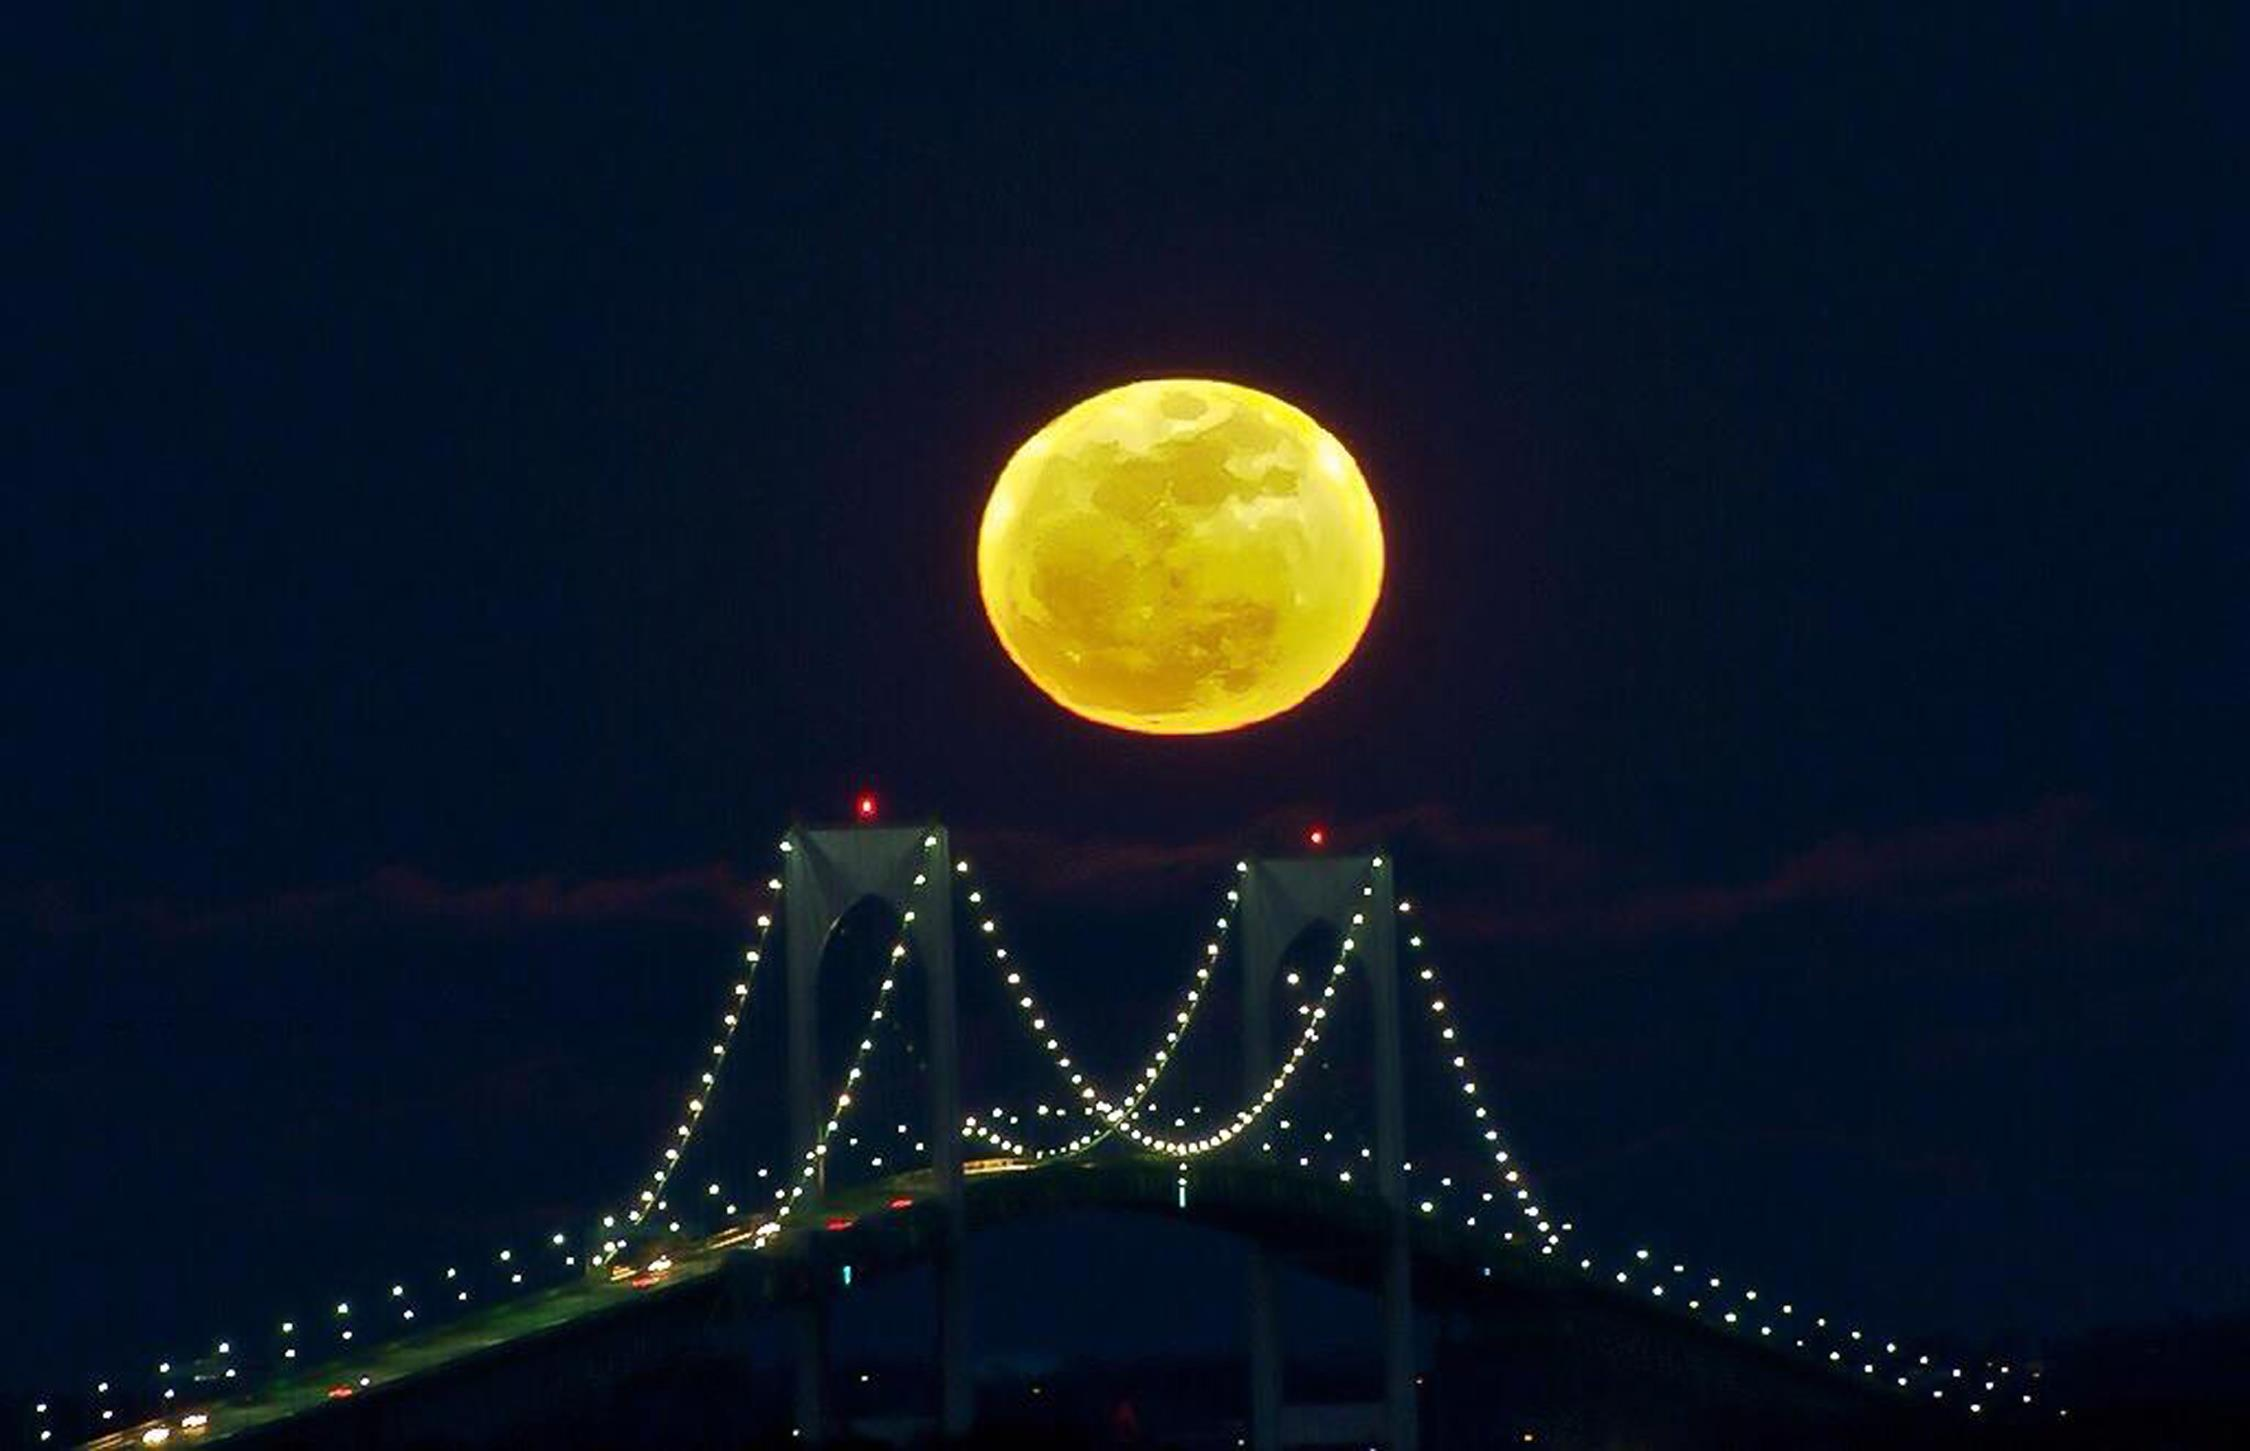 Supermoon seen on Aug. 10 in Newport, R.I.